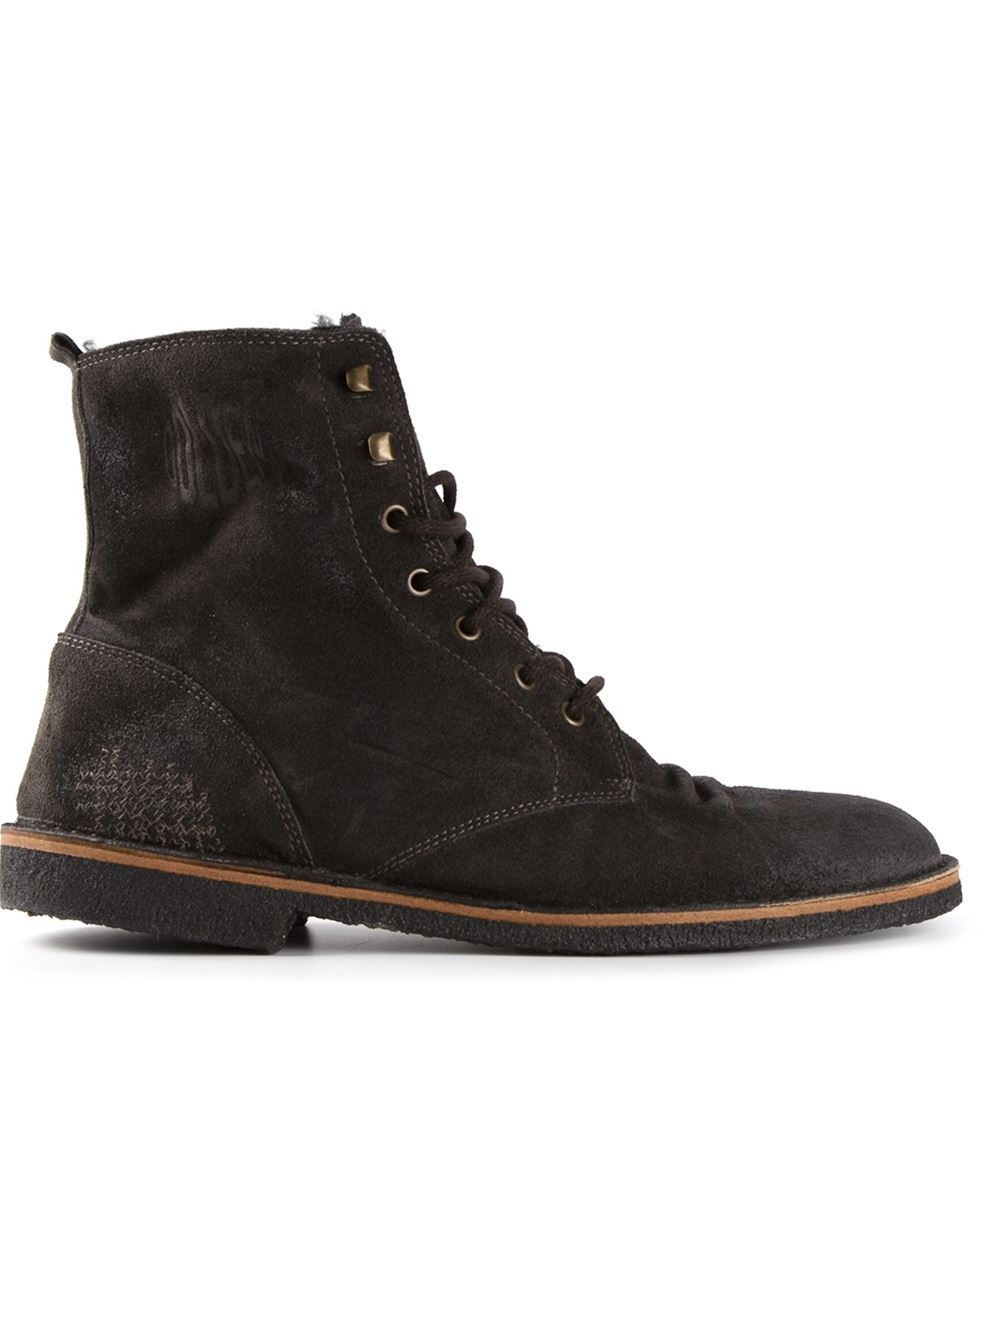 golden goose deluxe brand distressed lace up boots in